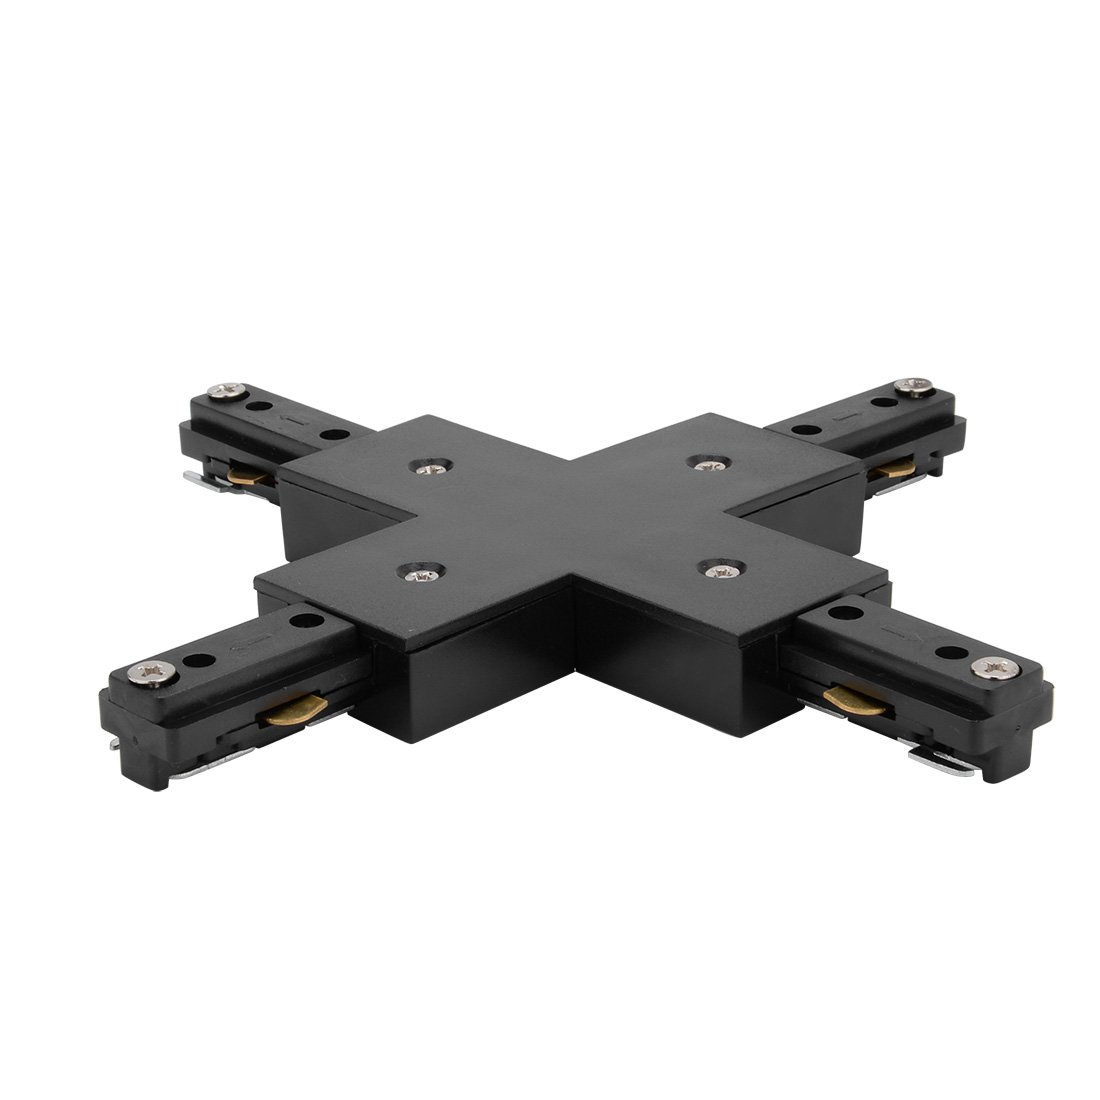 uxcell 4-Way X Connector for 3-Wire Lighting Track Rail, Black by uxcell (Image #2)